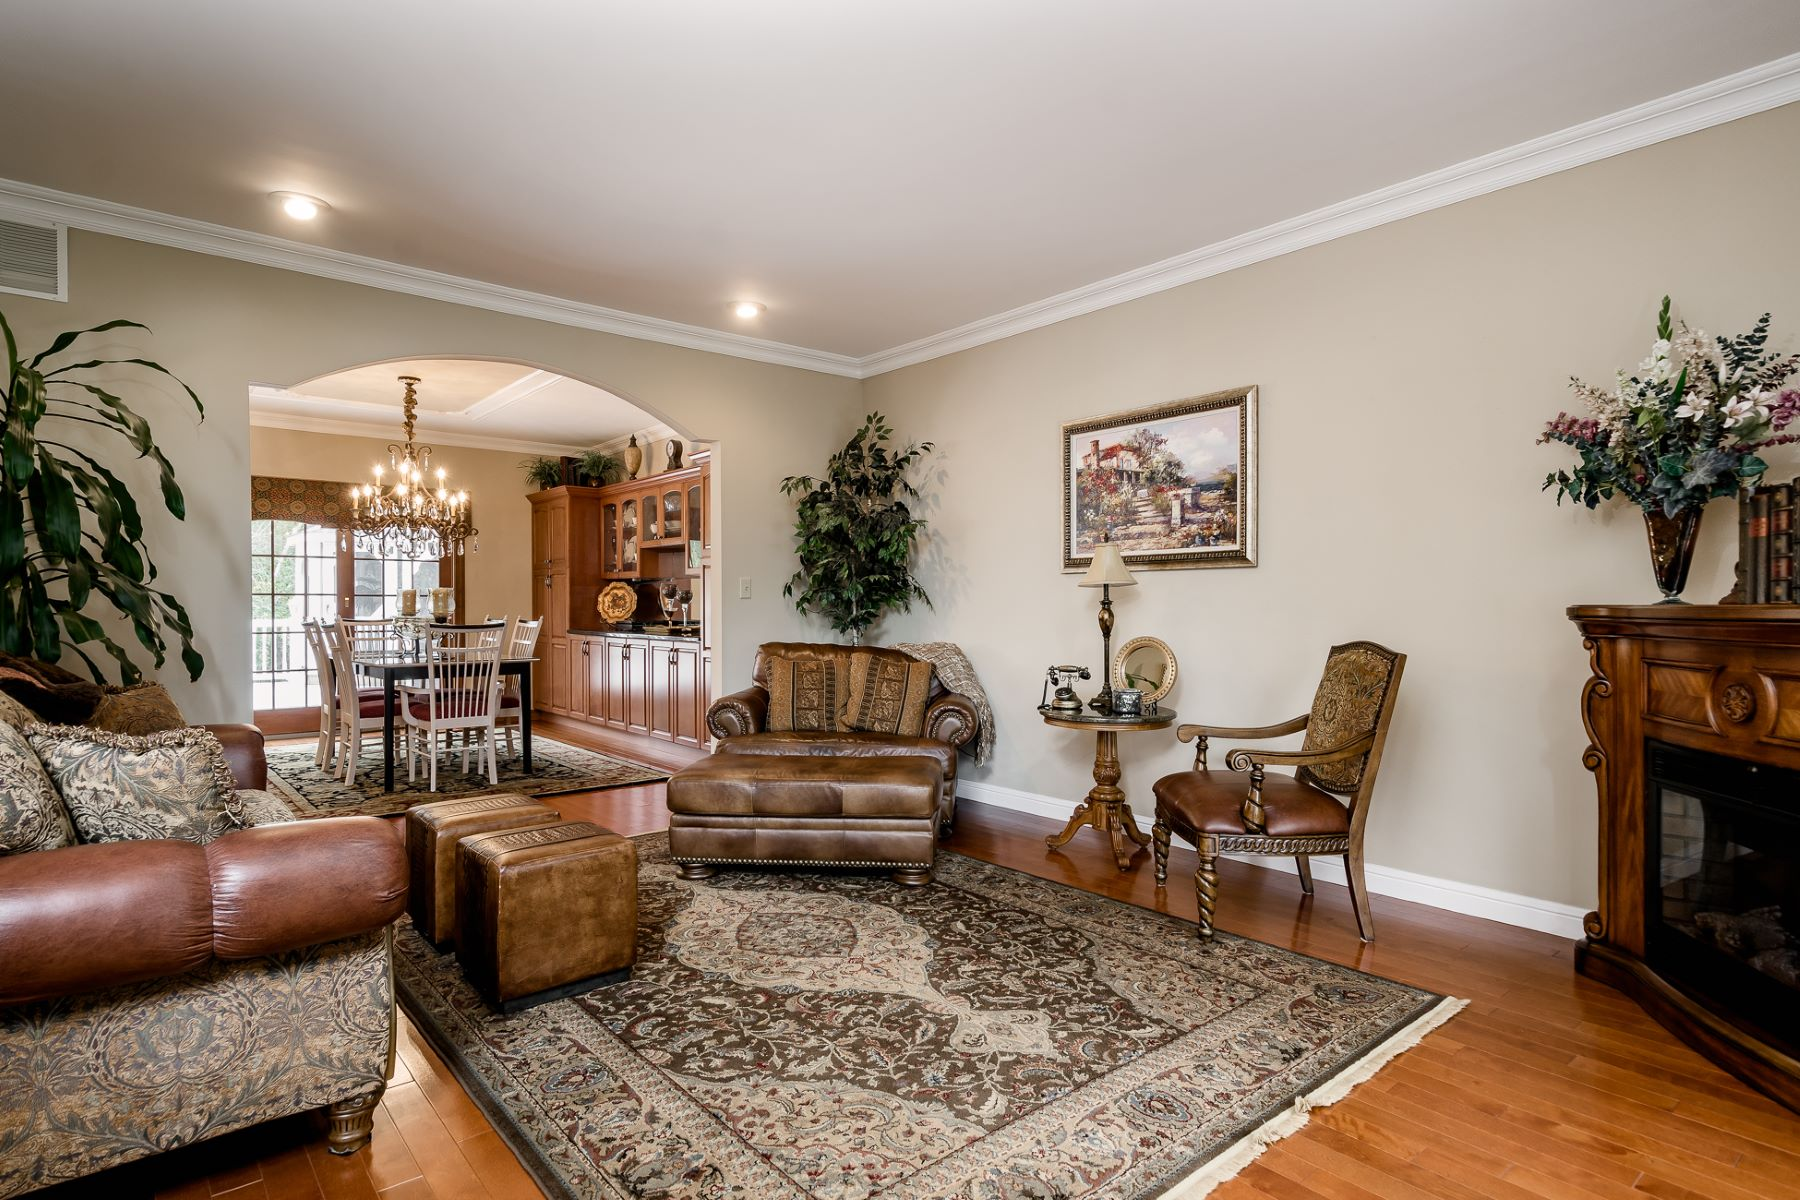 Additional photo for property listing at Reinterpreting Tradition in Monmouth Junction 34 Anderson Way, Monmouth Junction, Nueva Jersey 08852 Estados Unidos